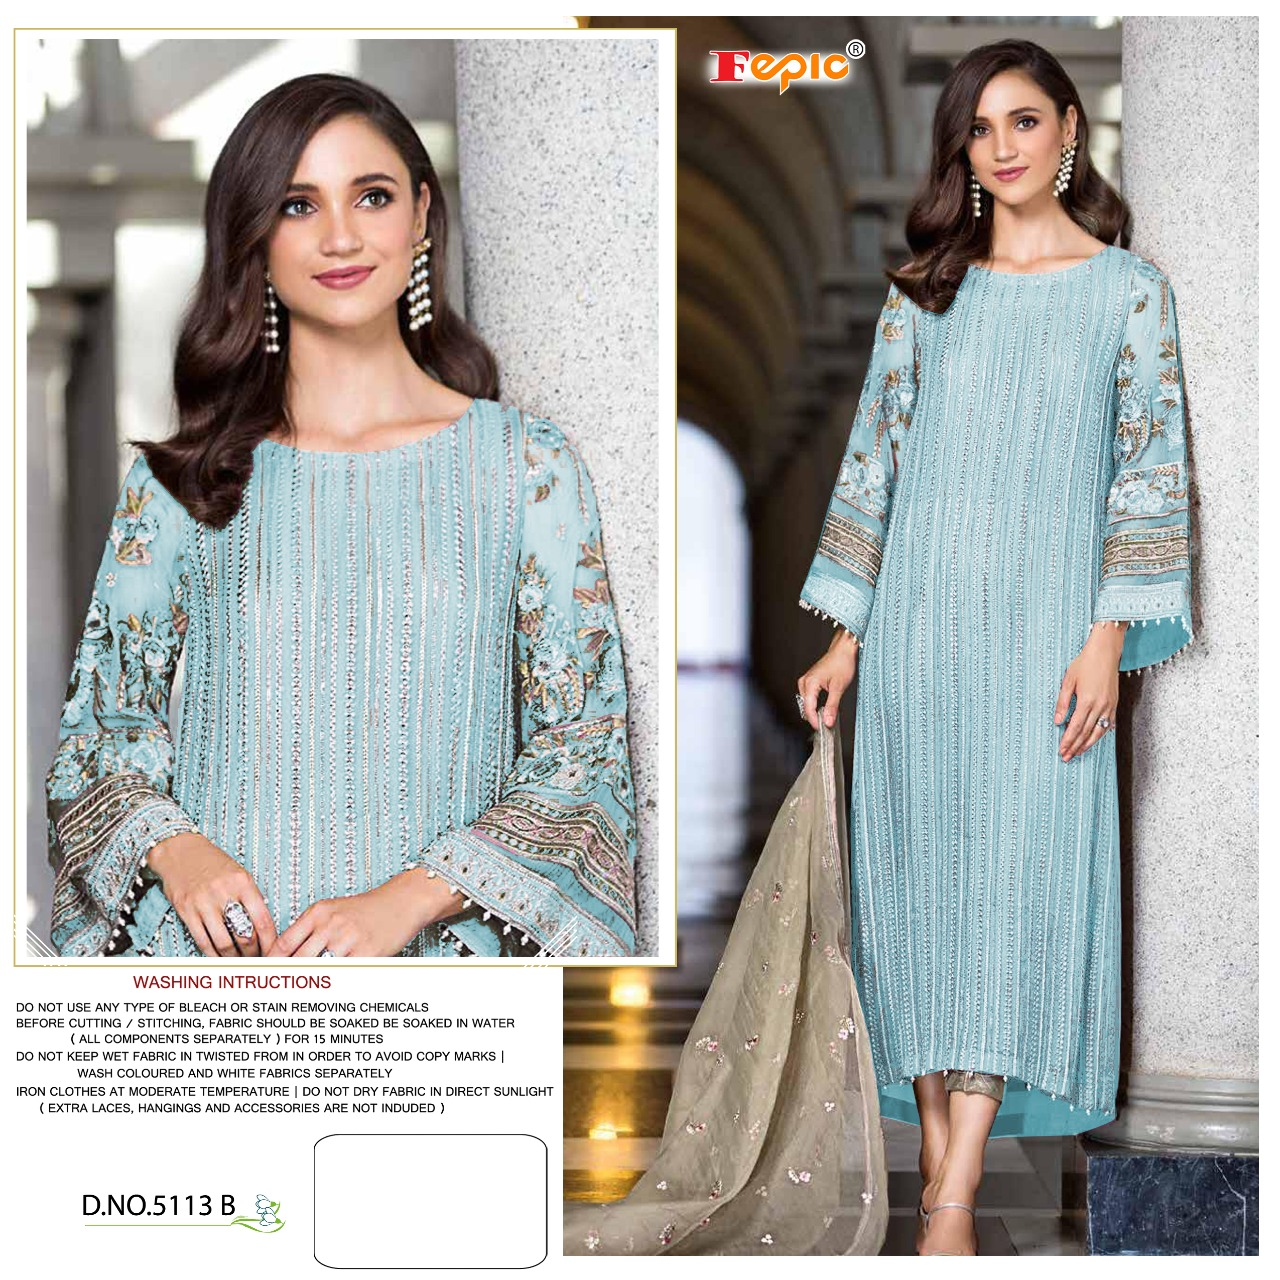 FEPIC SHARE FEPIC READY TO SHIP SINGLE SALWAR KAMEEZ 16-OCT-2021 3